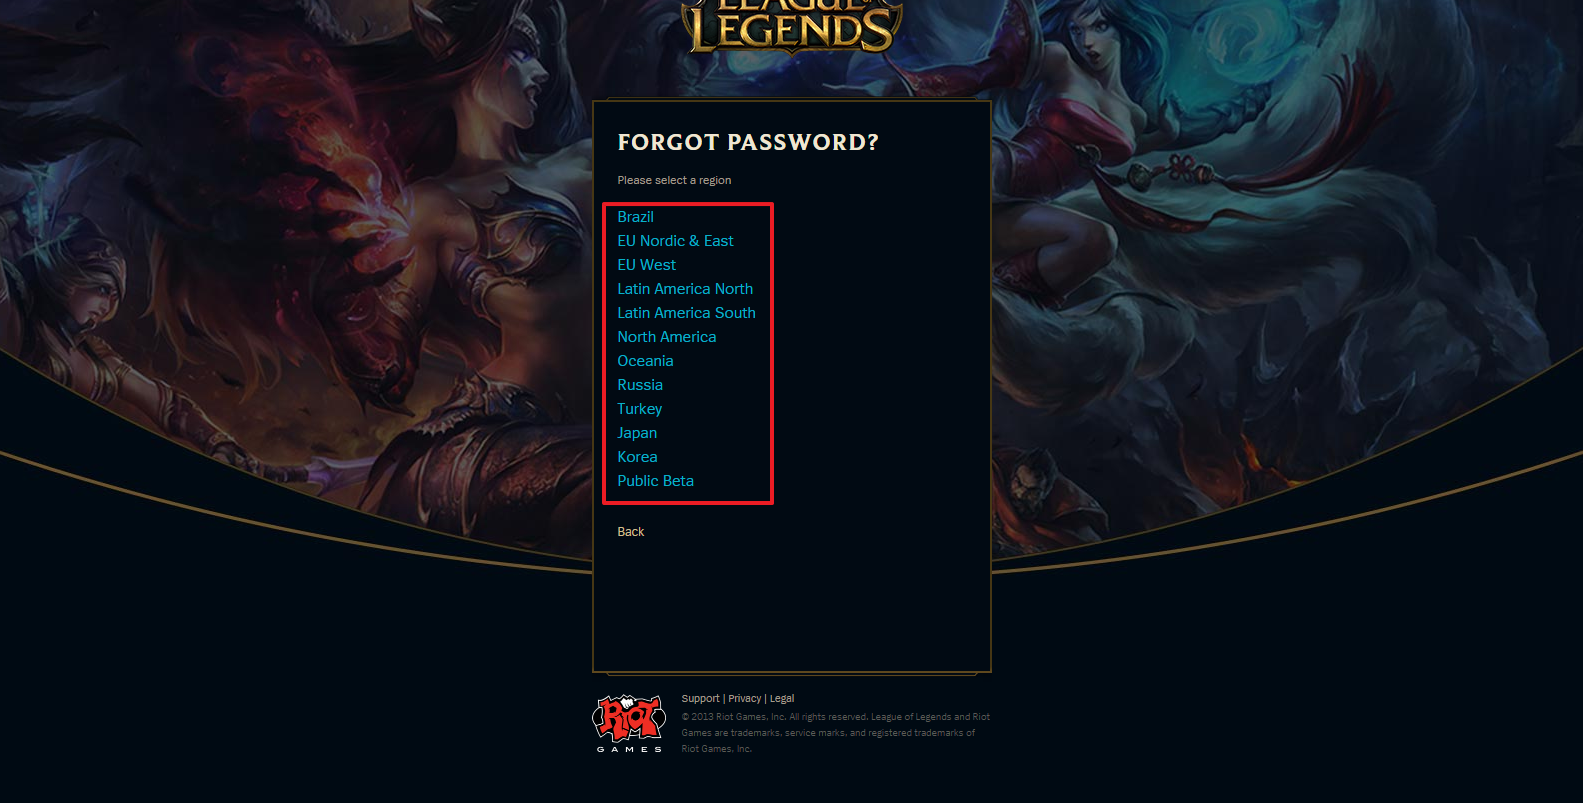 League of Legends password recovery step 3